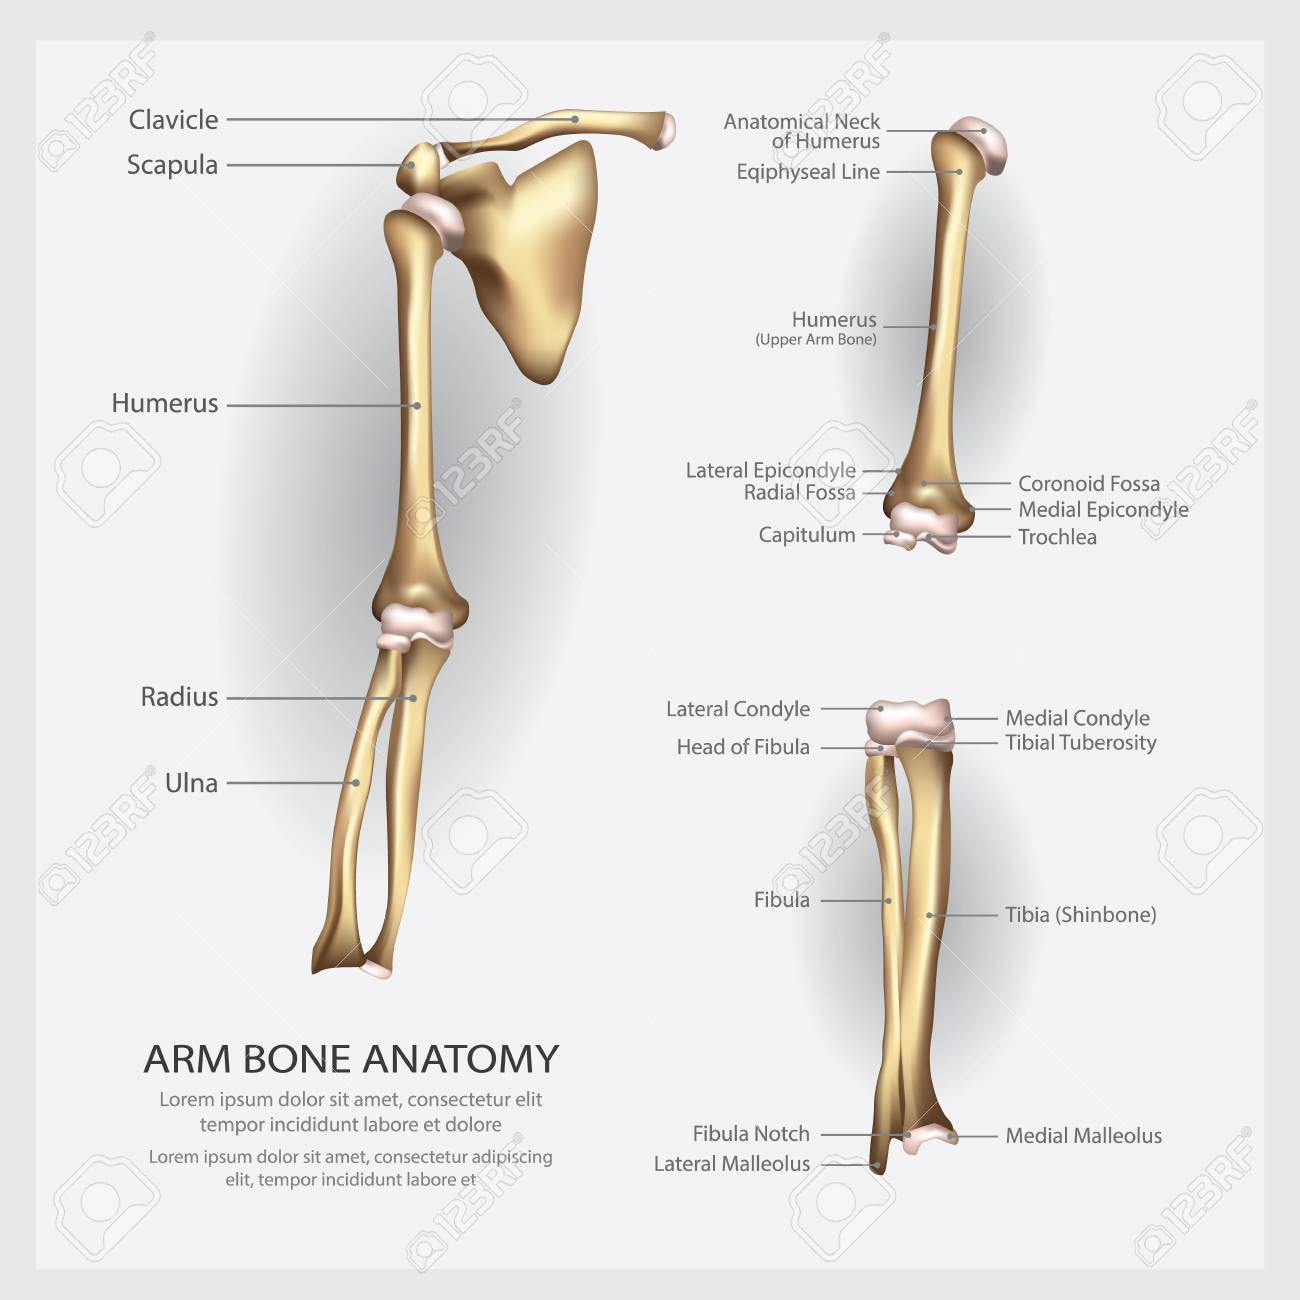 Arm Bone Anatomy With Detail Vector Illustration Royalty Free ...